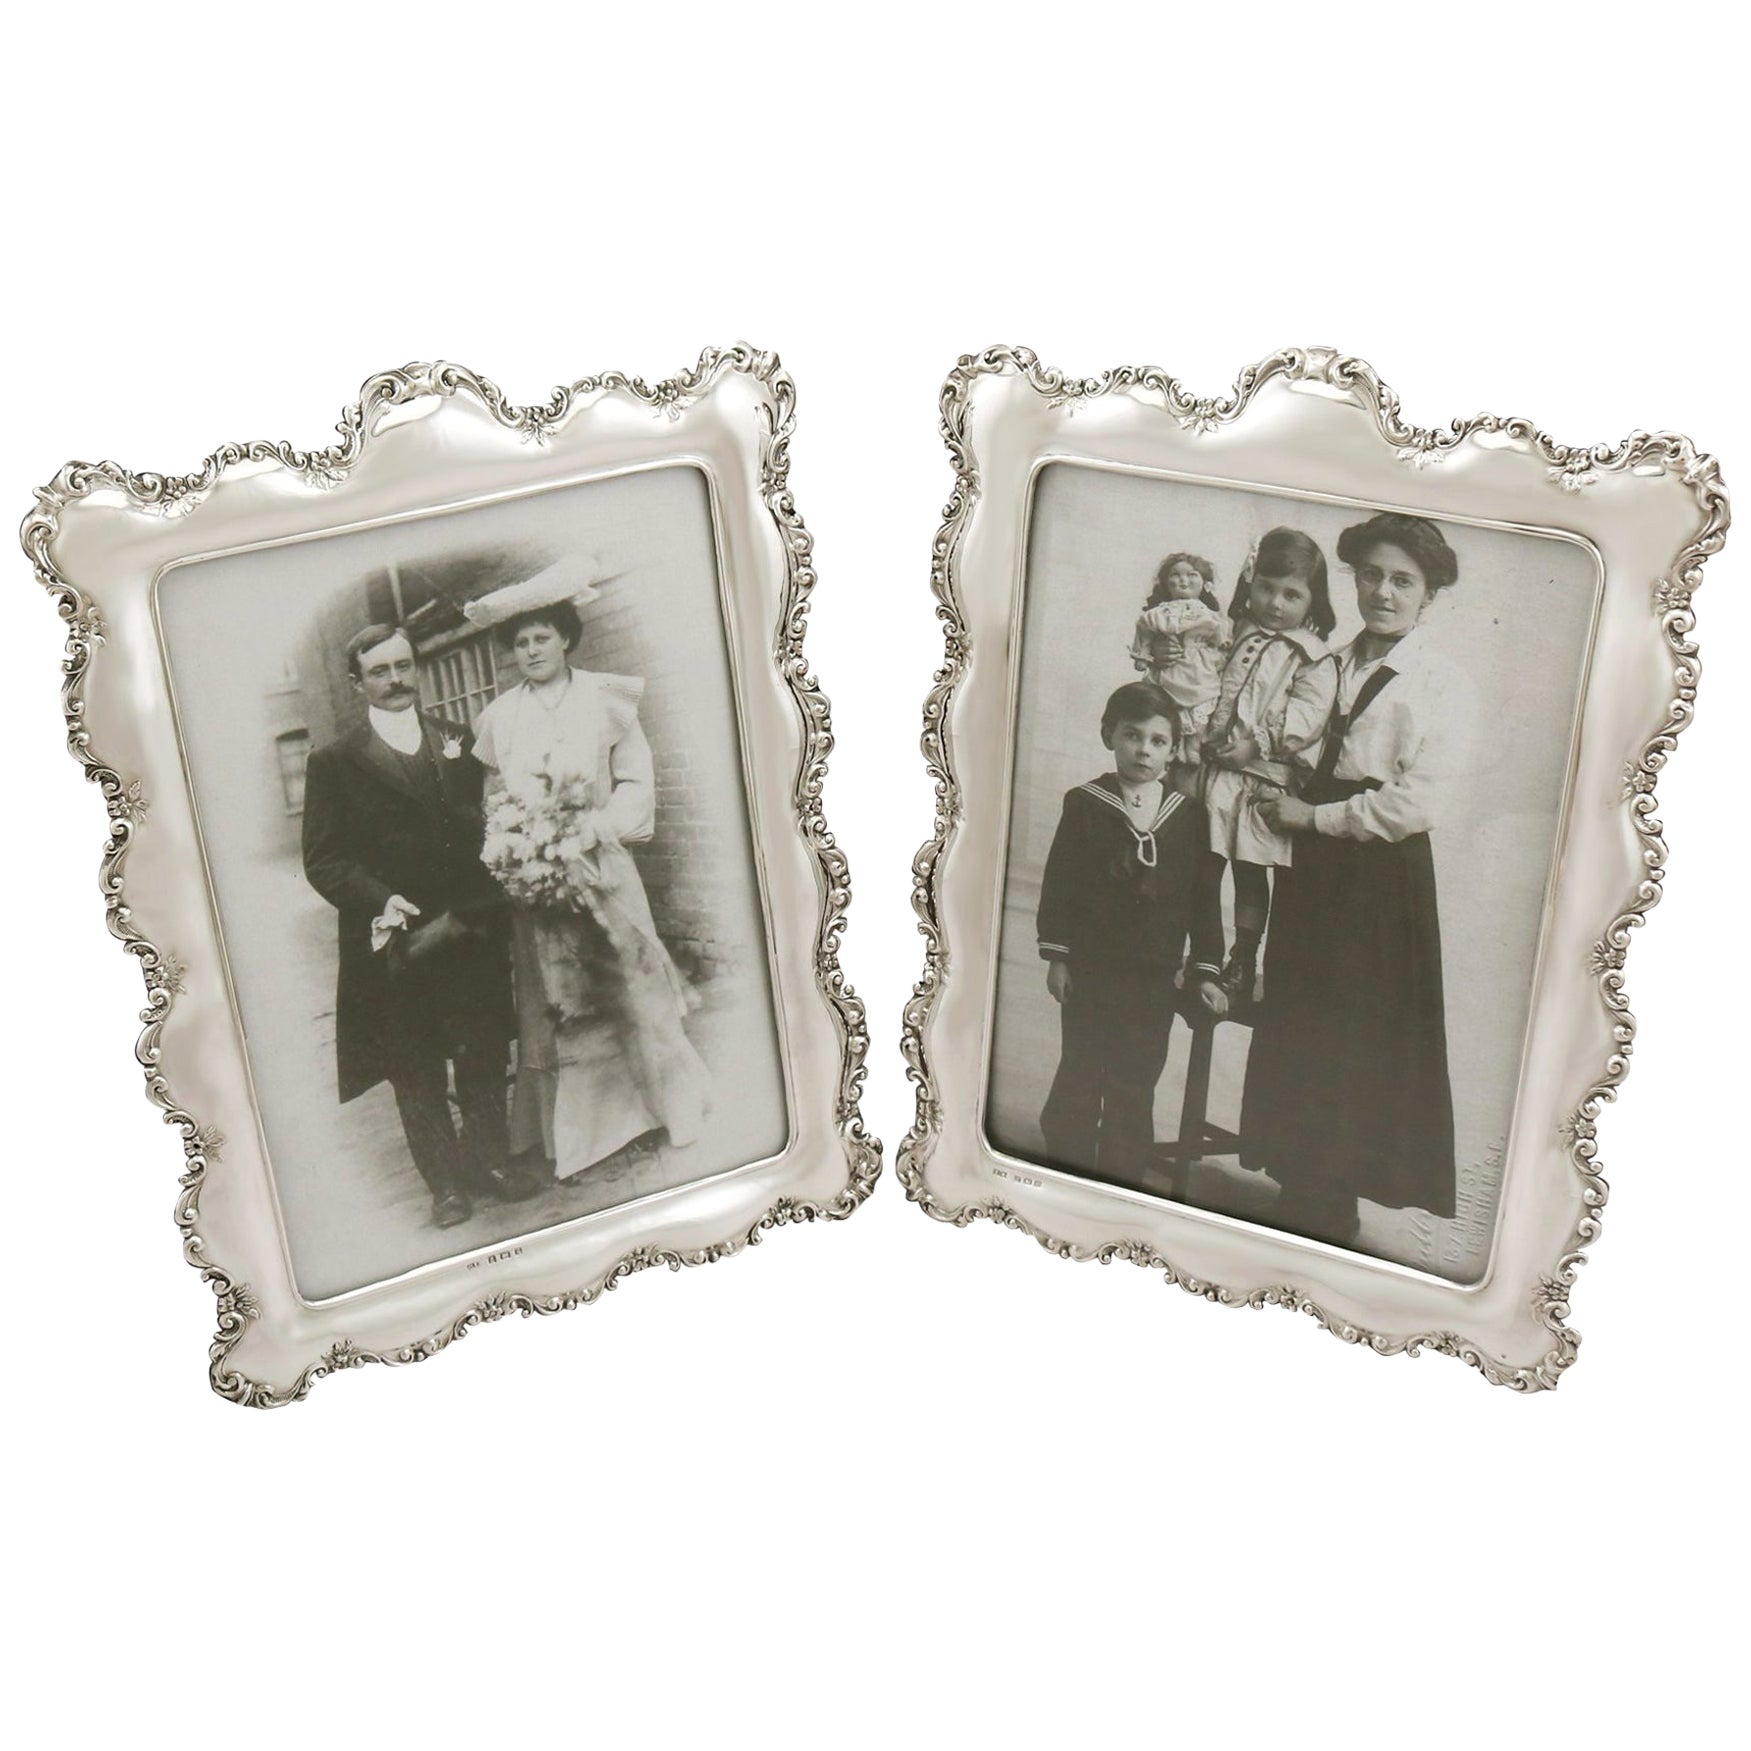 Antique Edwardian Sterling Silver Photograph Frames by Henry Matthews